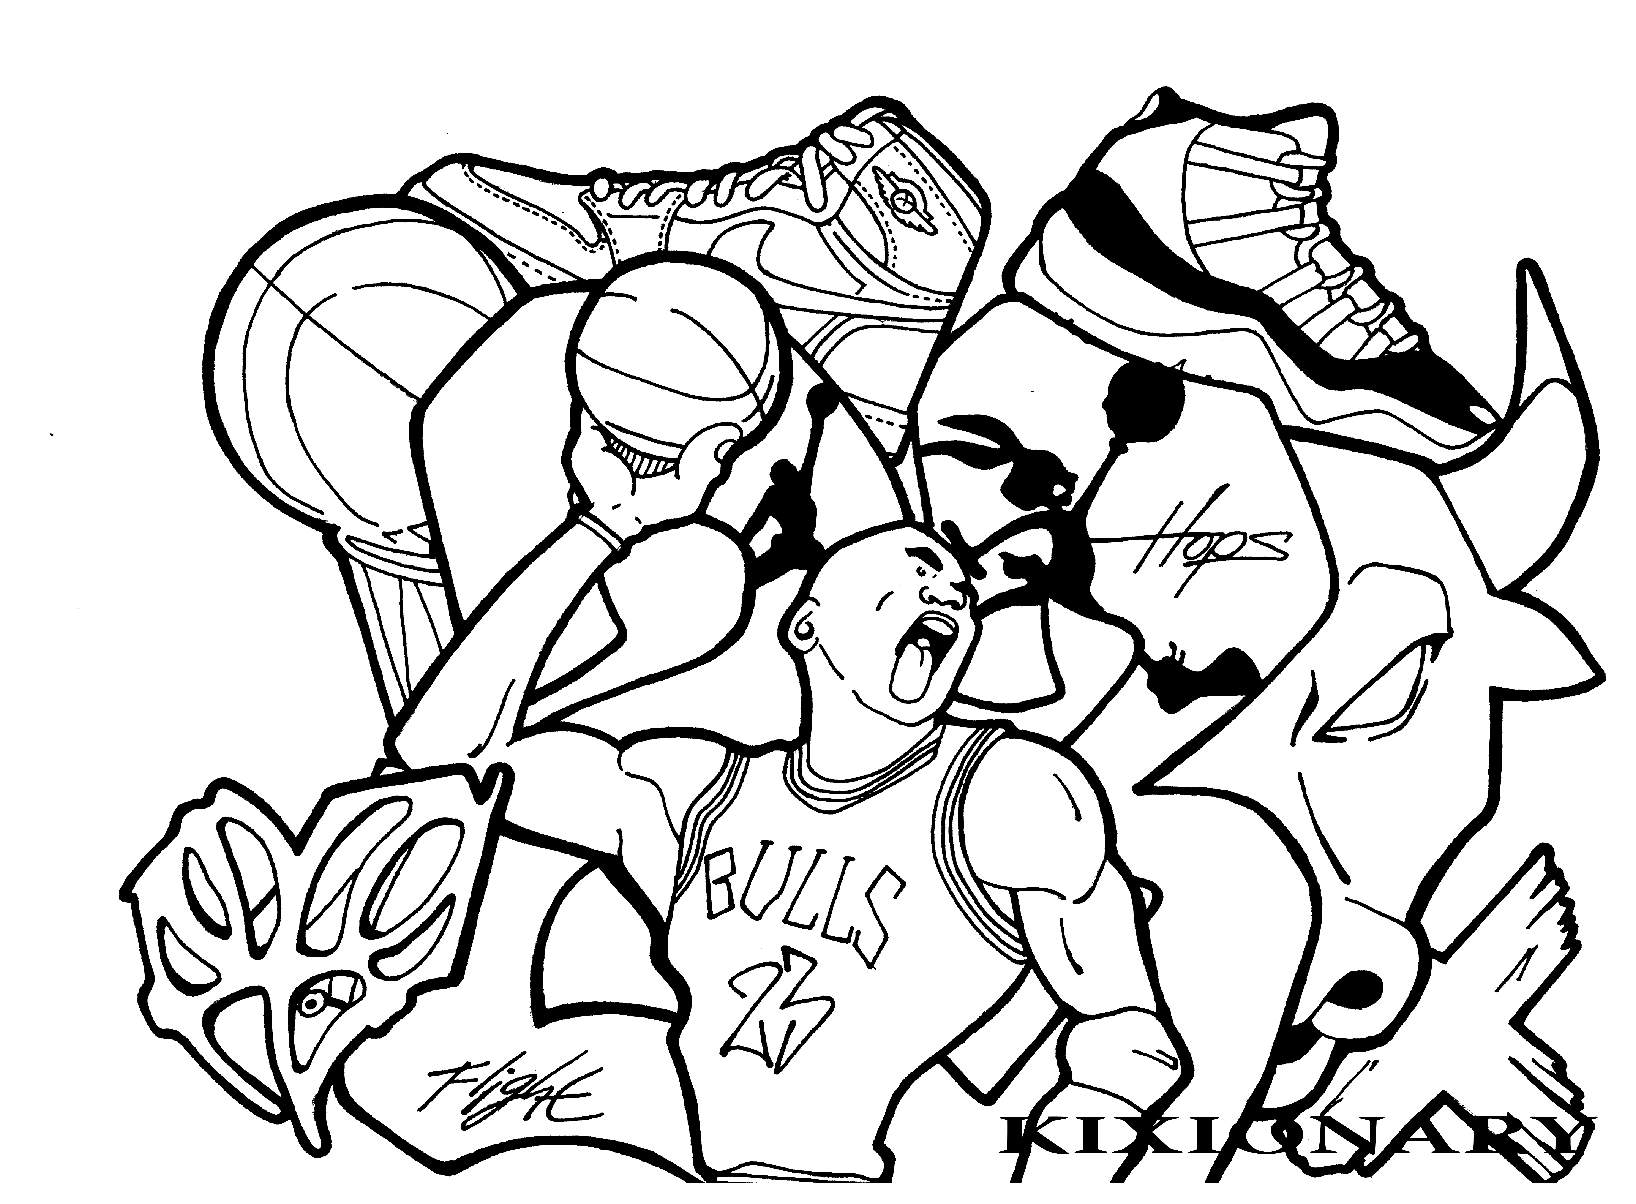 Graffiti and Street Art - Coloring pages for adults ...